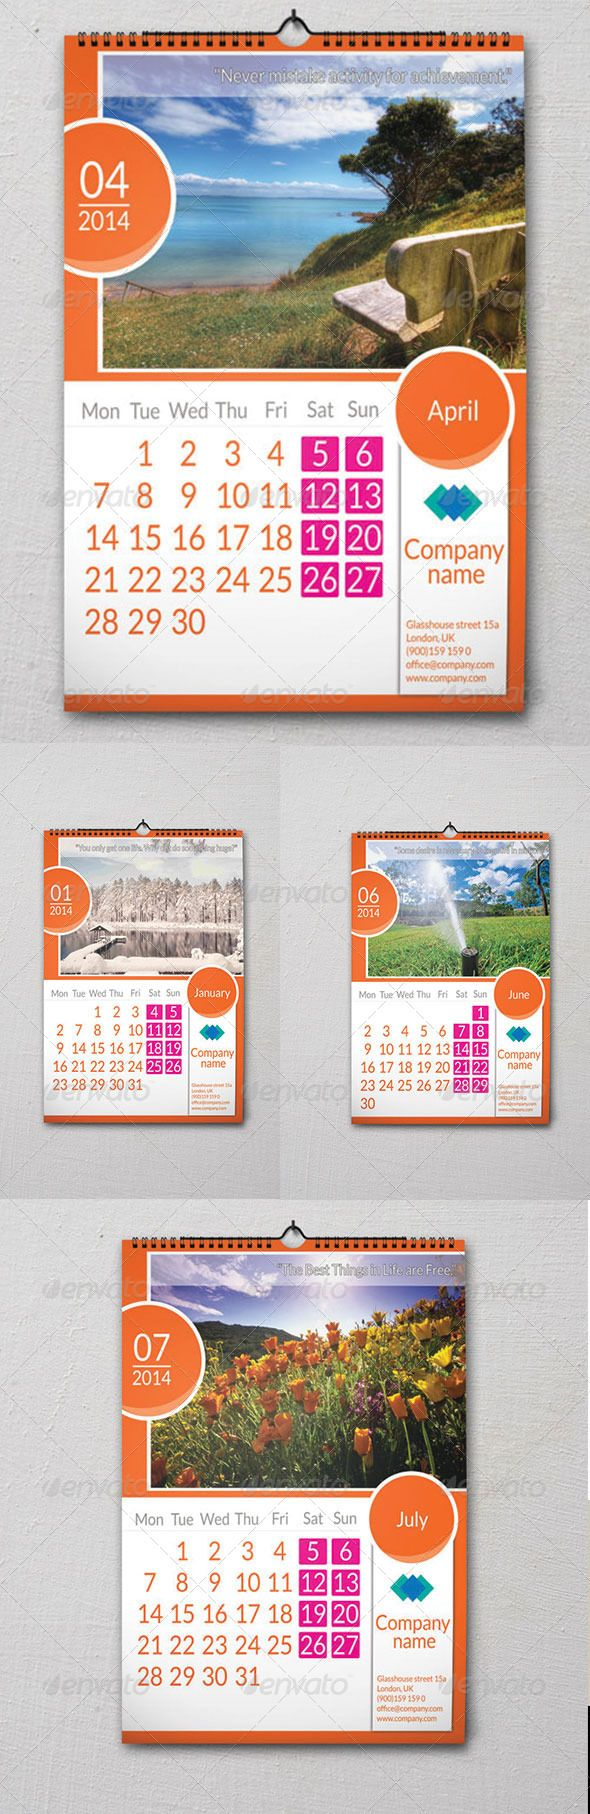 Wall calendar 2014 Ready for Print File include: 12 PSD files(1/month) Free font used: Lato( http://www.fontsquirrel.com/fonts/lat